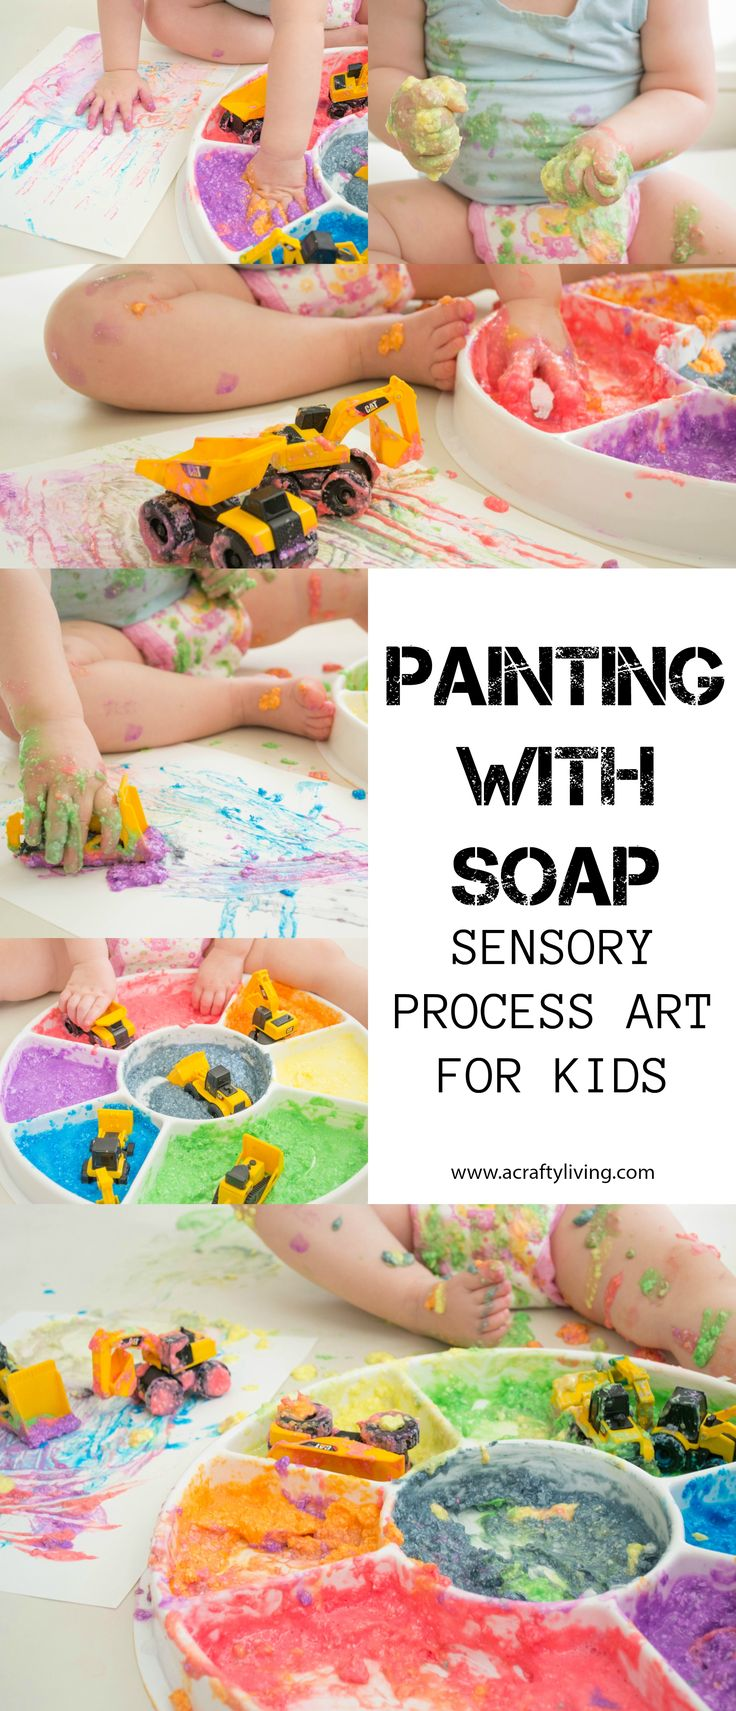 Painting with Soap - Sensory Process art for Toddlers & Preschoolers! www.acraftyliving.com